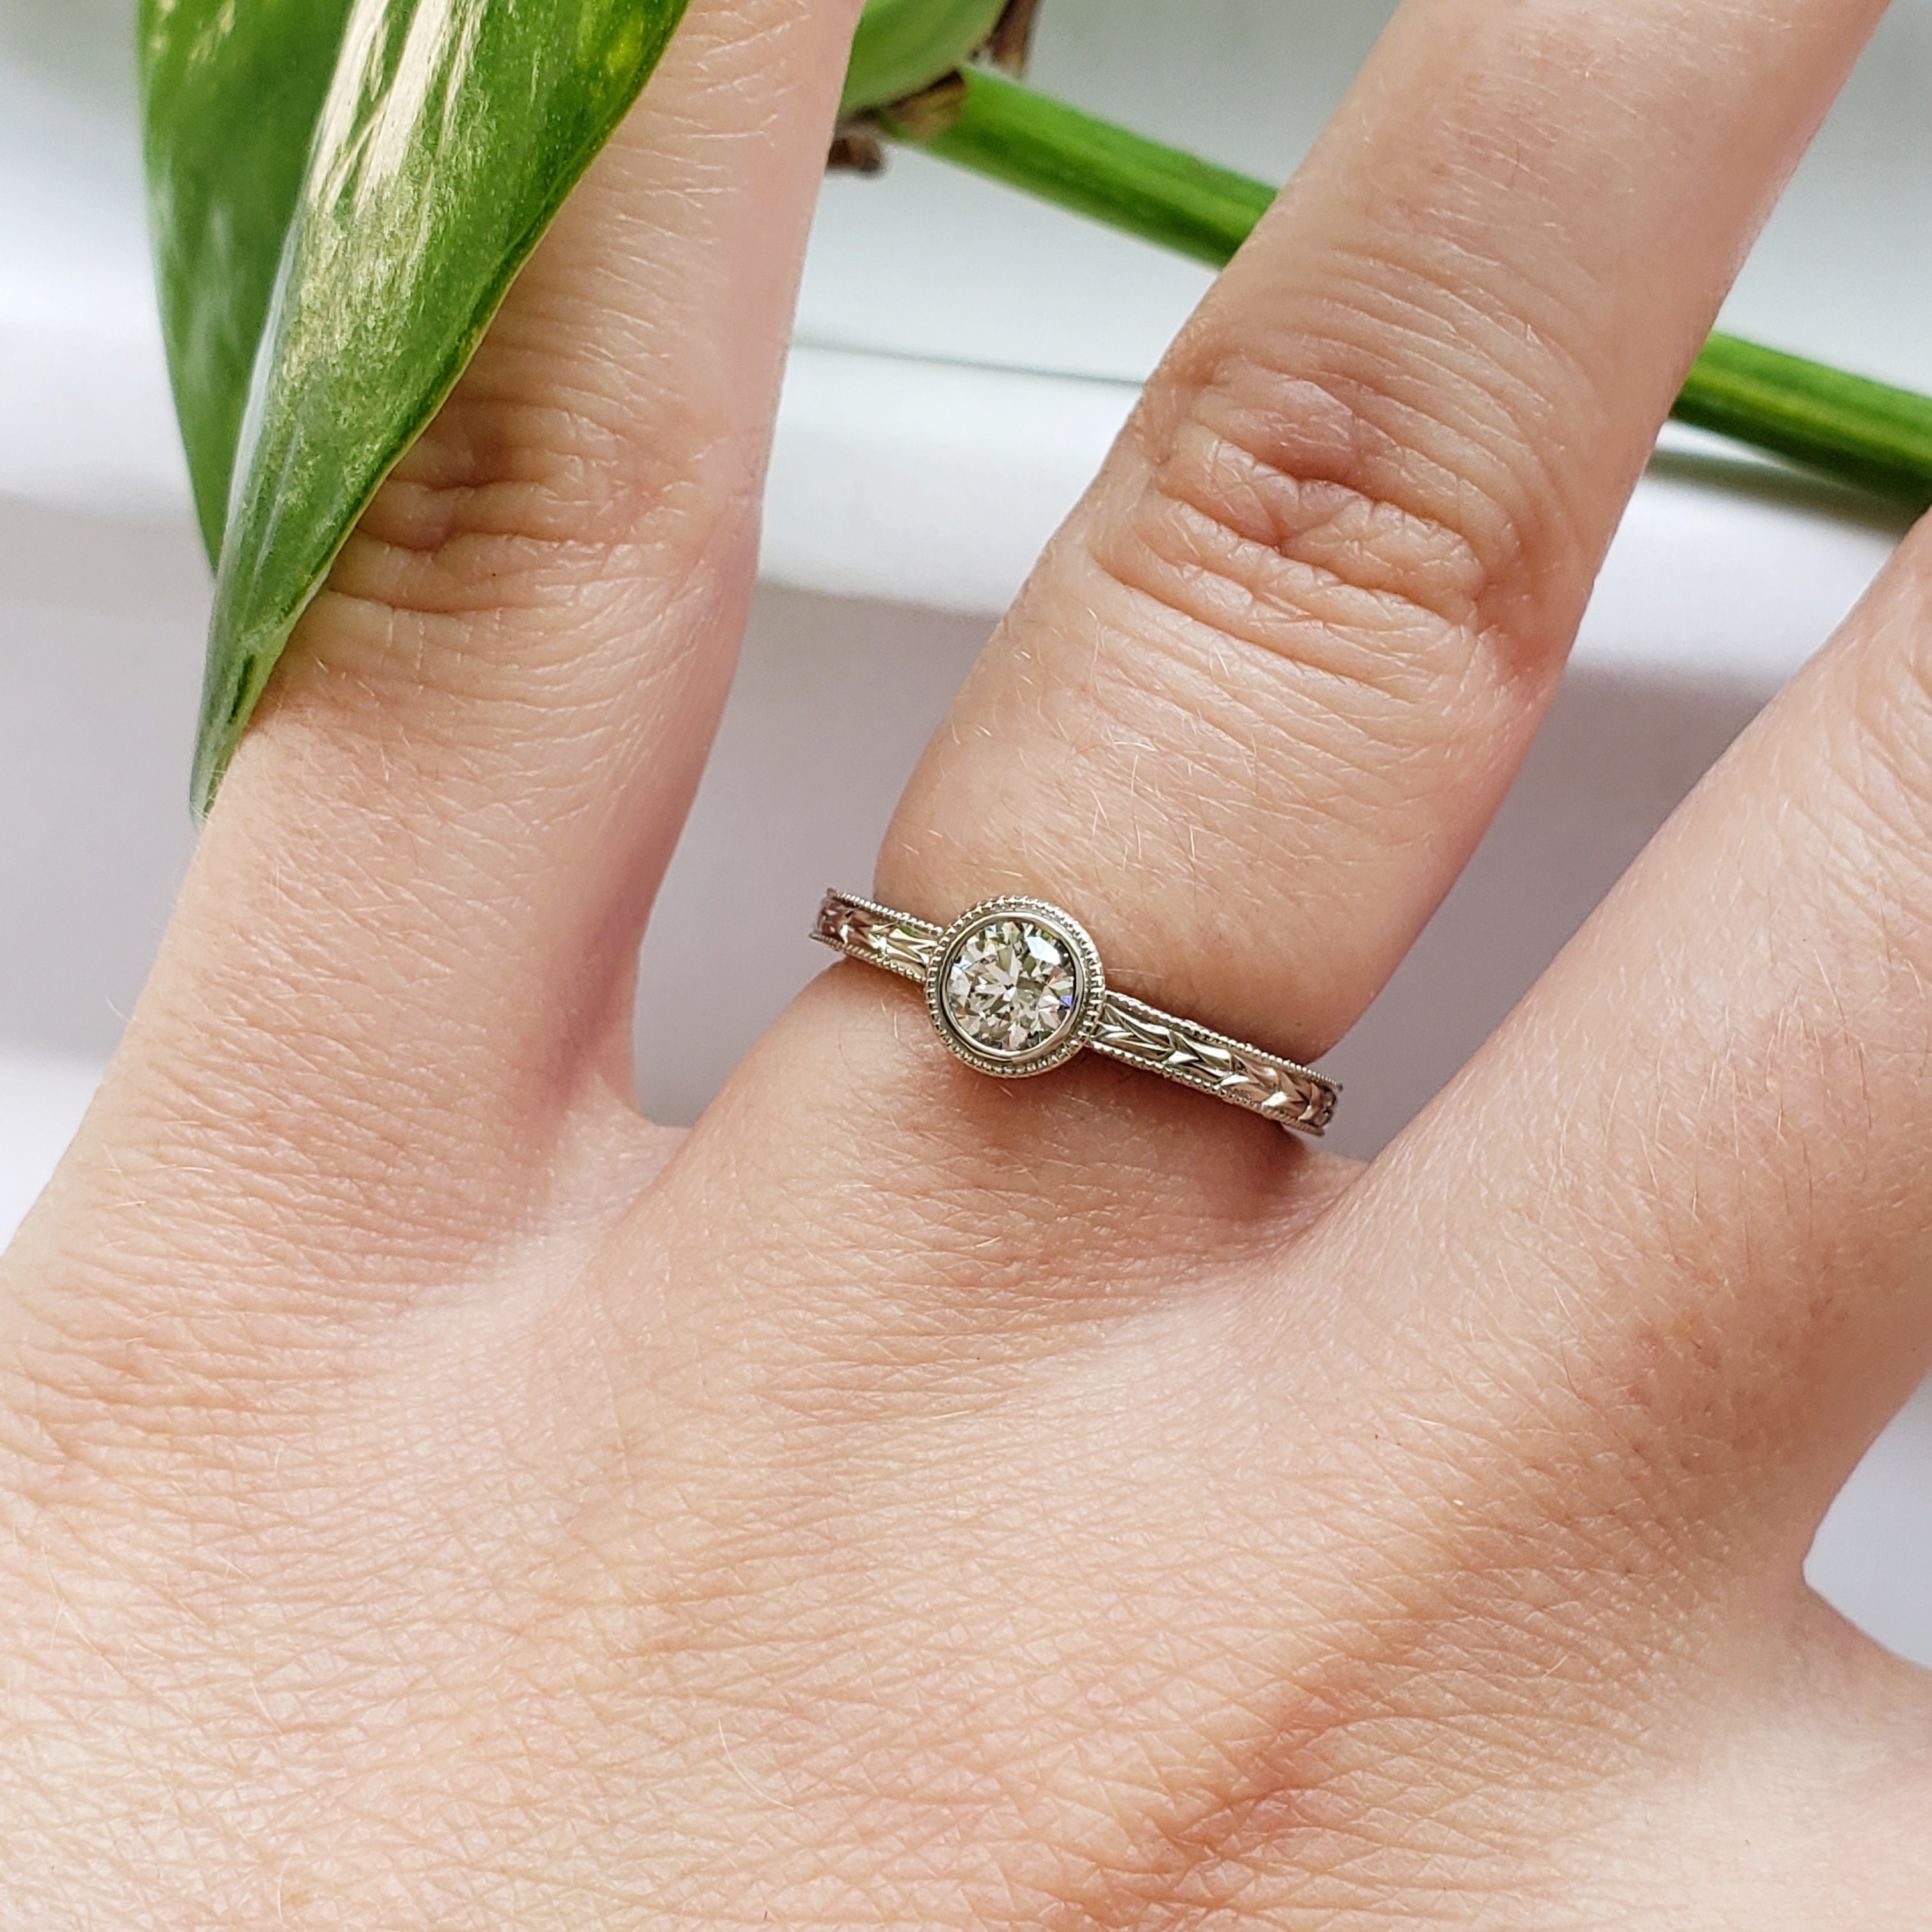 unique 14kt white gold solitaire engraved Canadian diamond bezel set wheat engagement ring era design